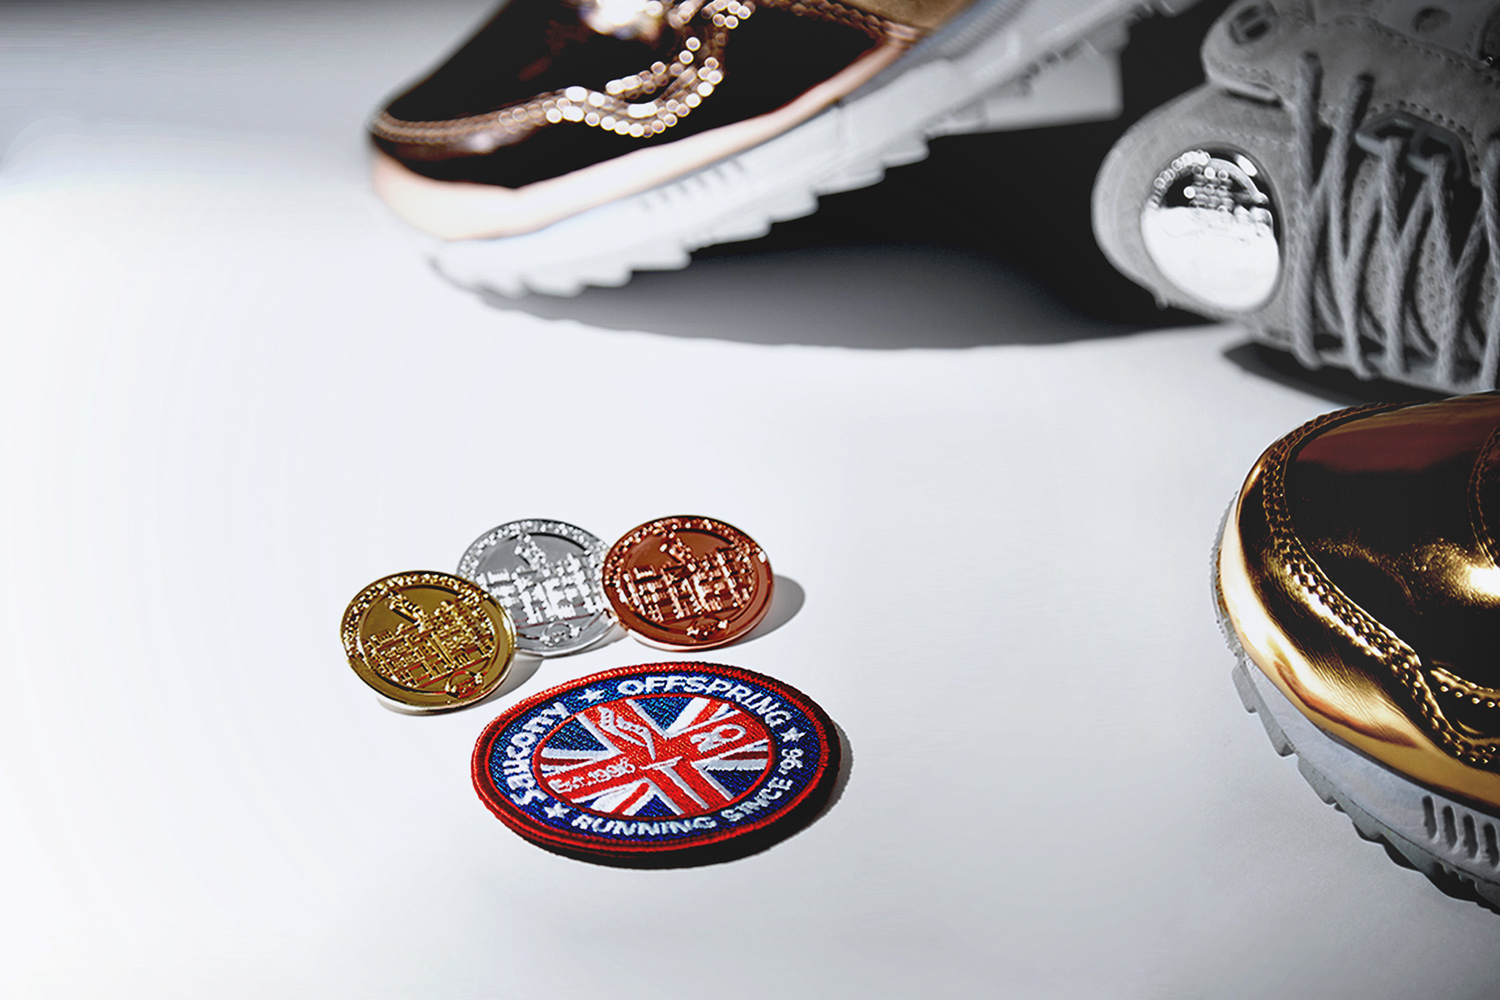 saucony-shadow-5000-offspring-medal-pack-03